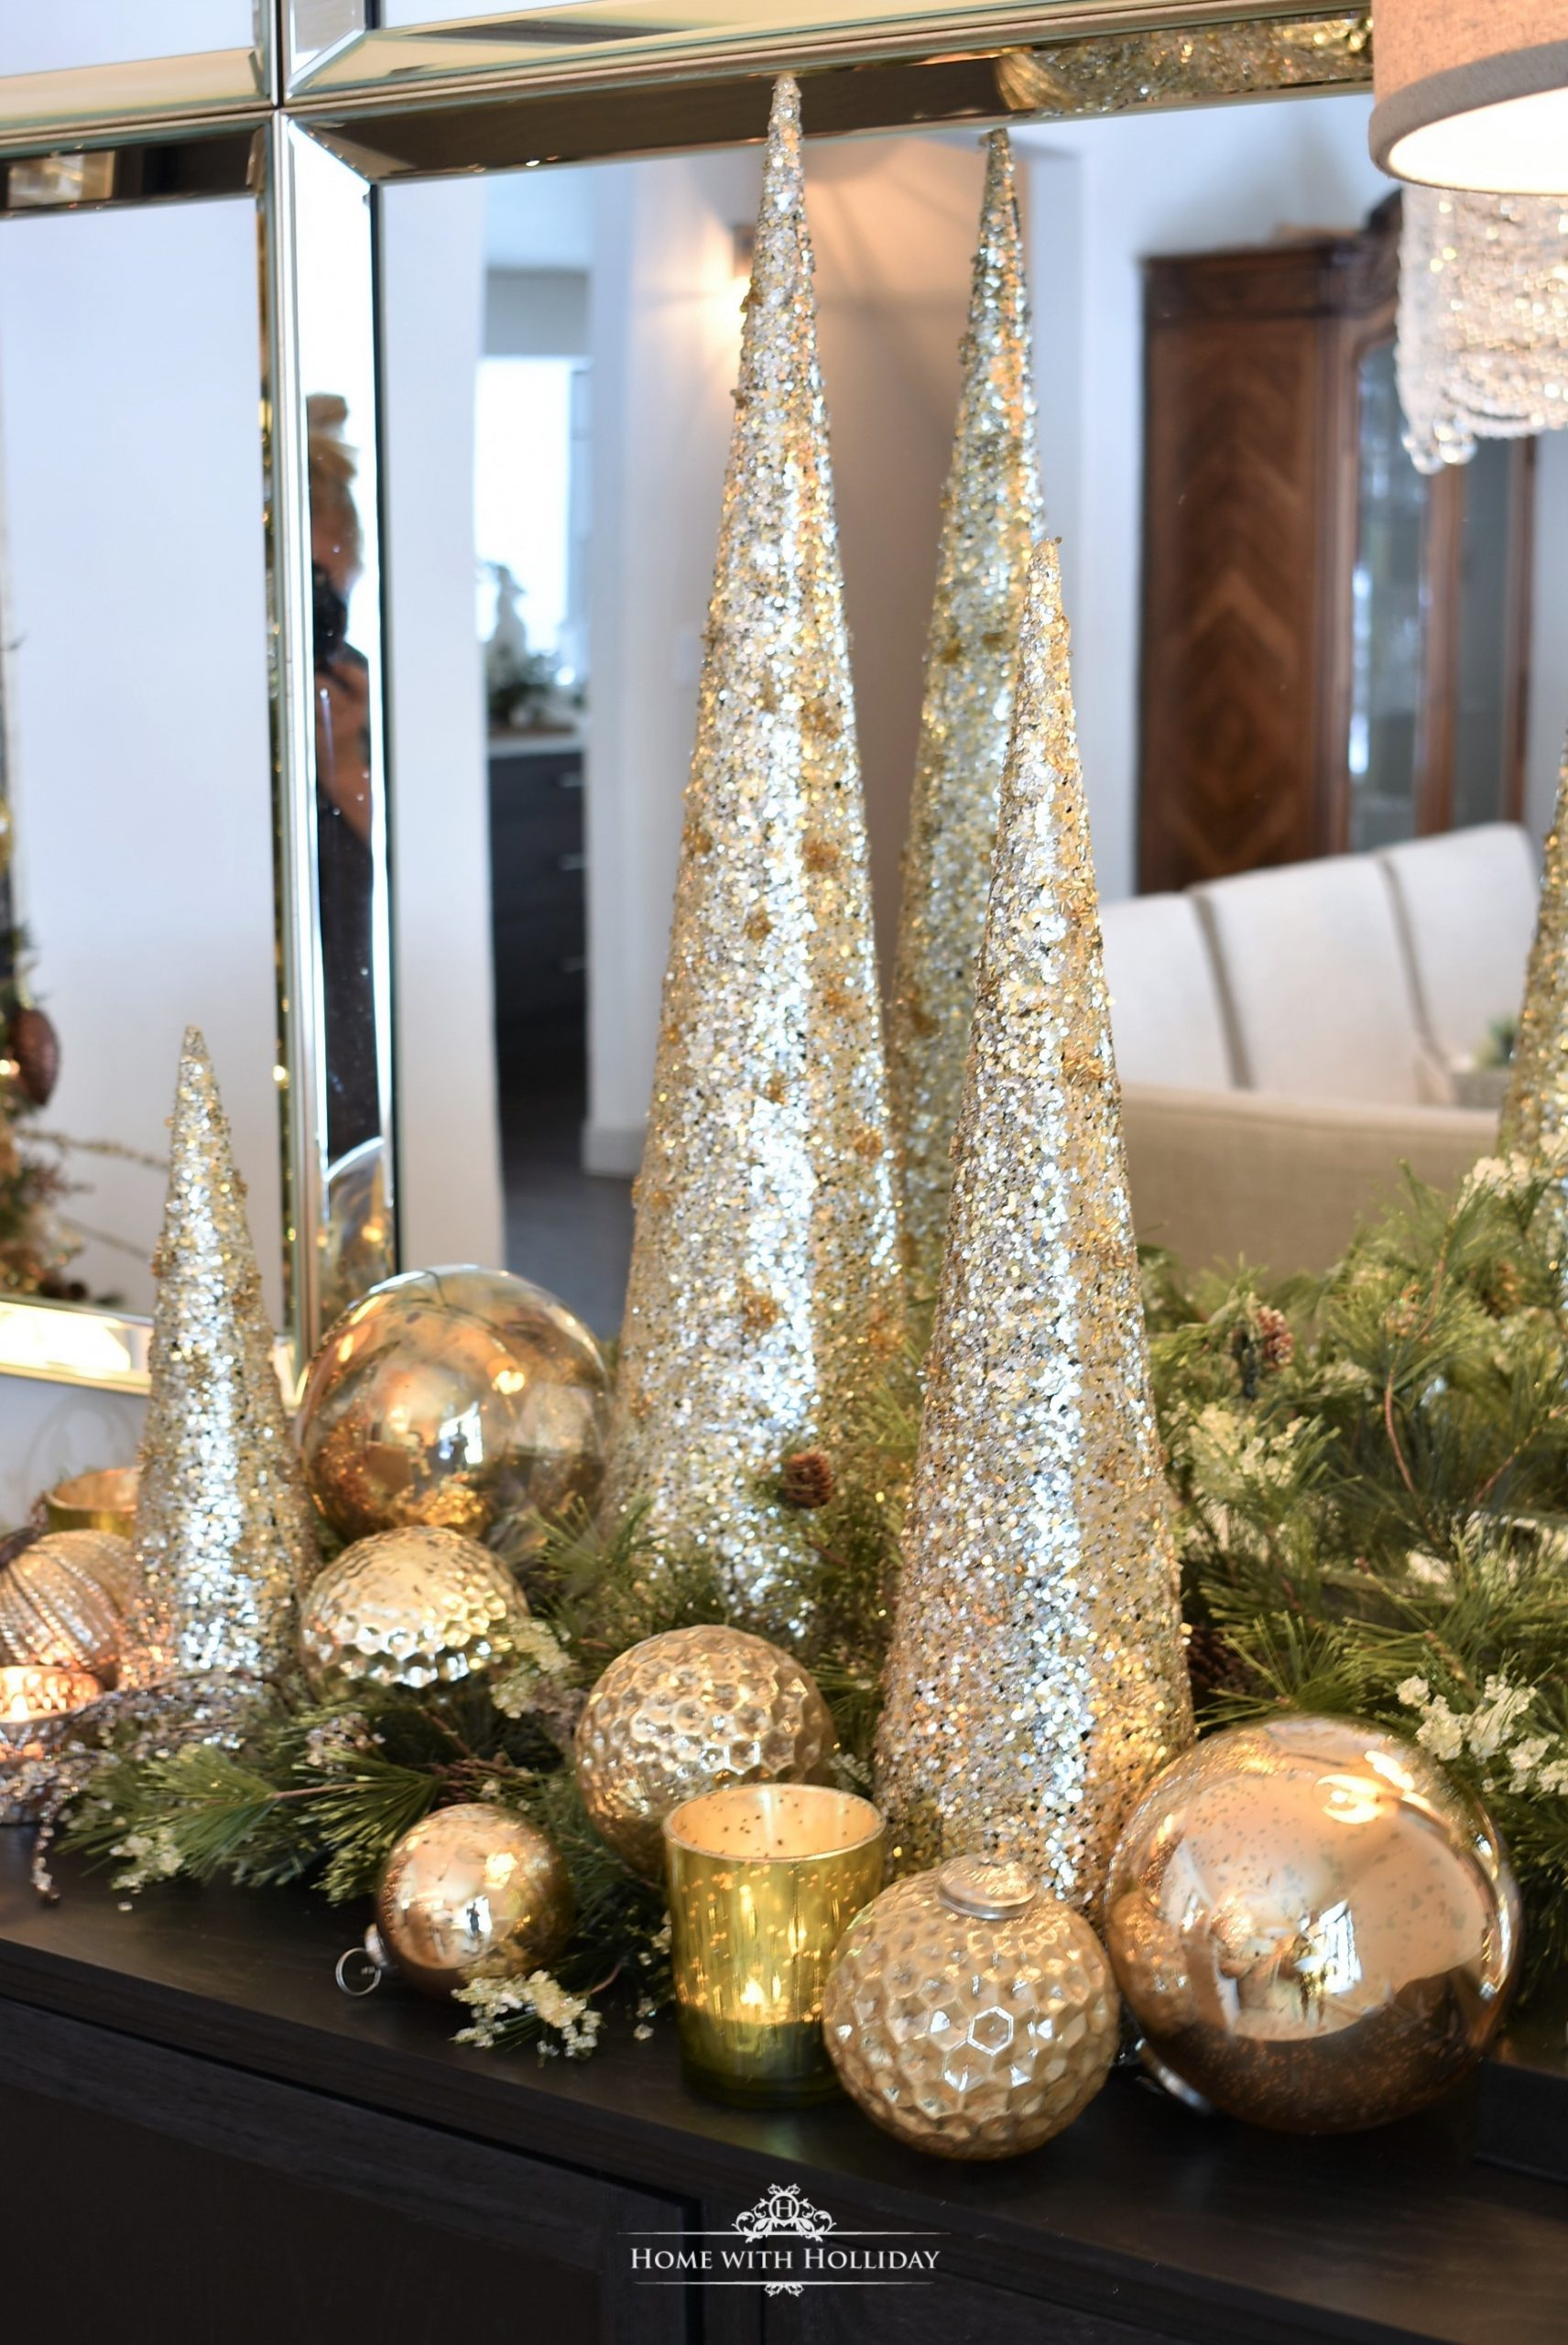 Silver and Gold Glam Christmas Centerpiece with gold cone trees and ornaments